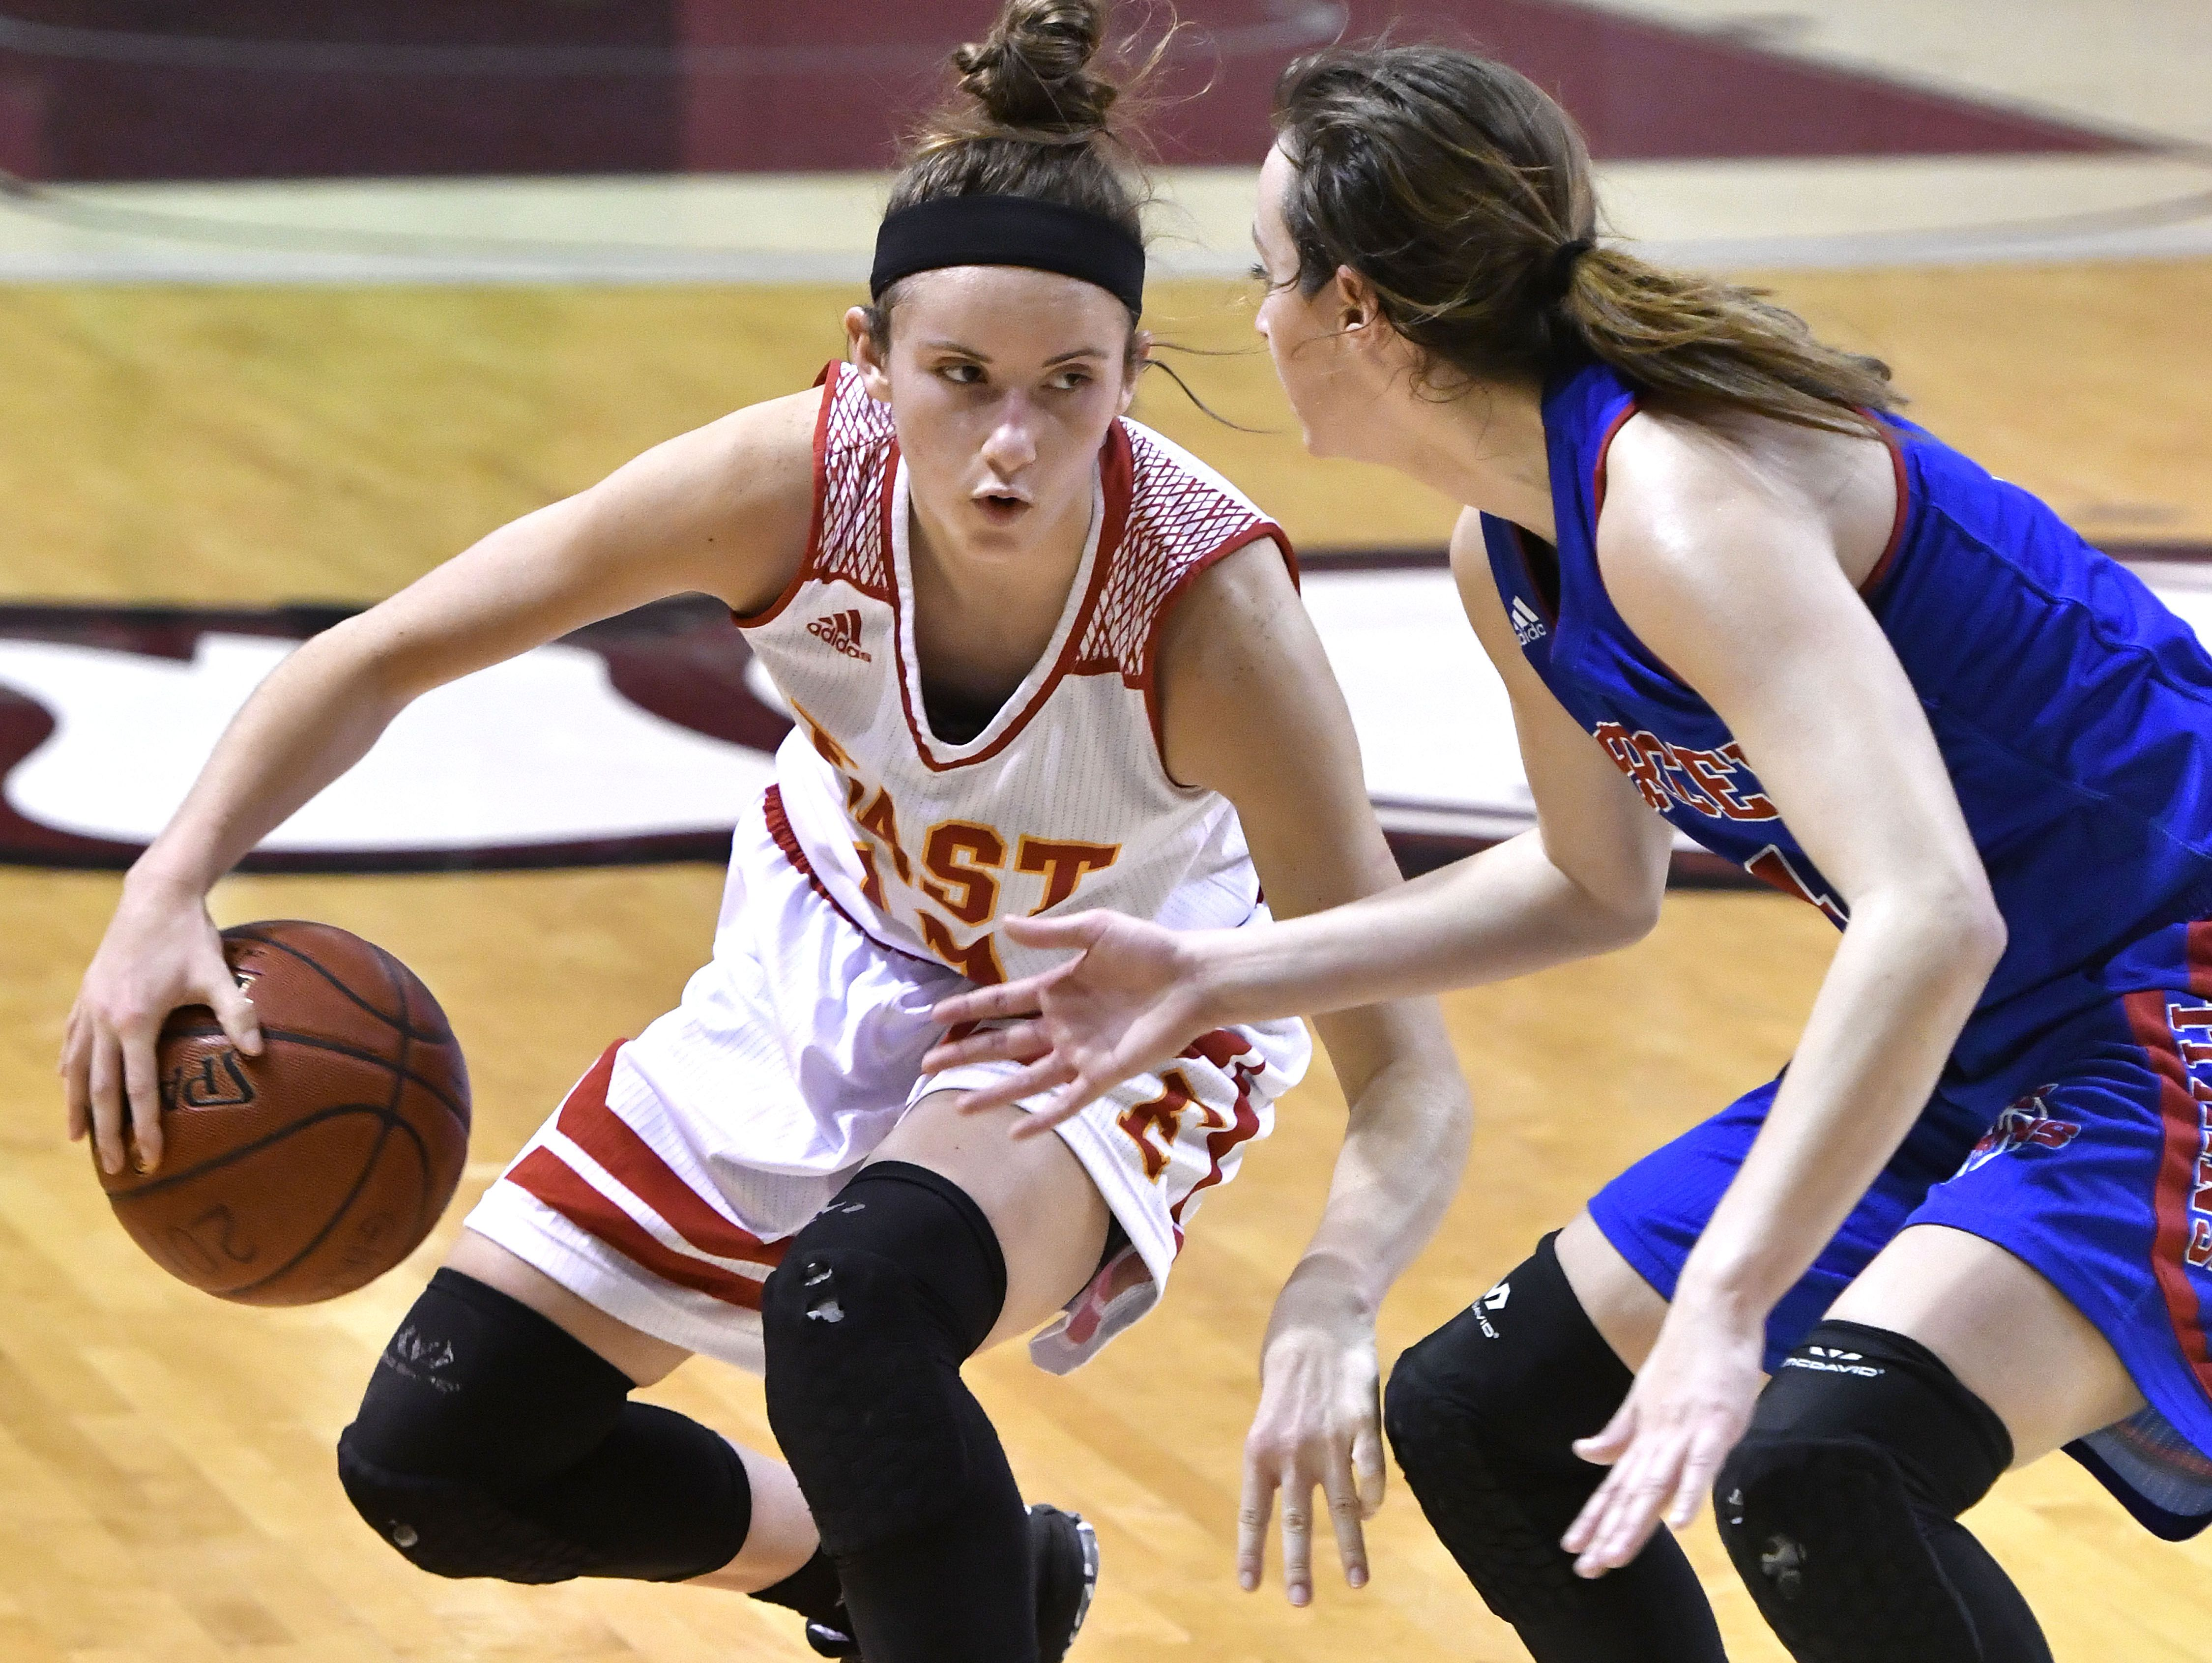 Bullitt East's Lindsey Duvall (12) attempts to drive past the defense of Mercer County's Seygan Robins (4) during their girls LIT game, Friday, Jan. 27, 2017 in Louisville Ky. (Timothy D. Easley/Special to the C-J)